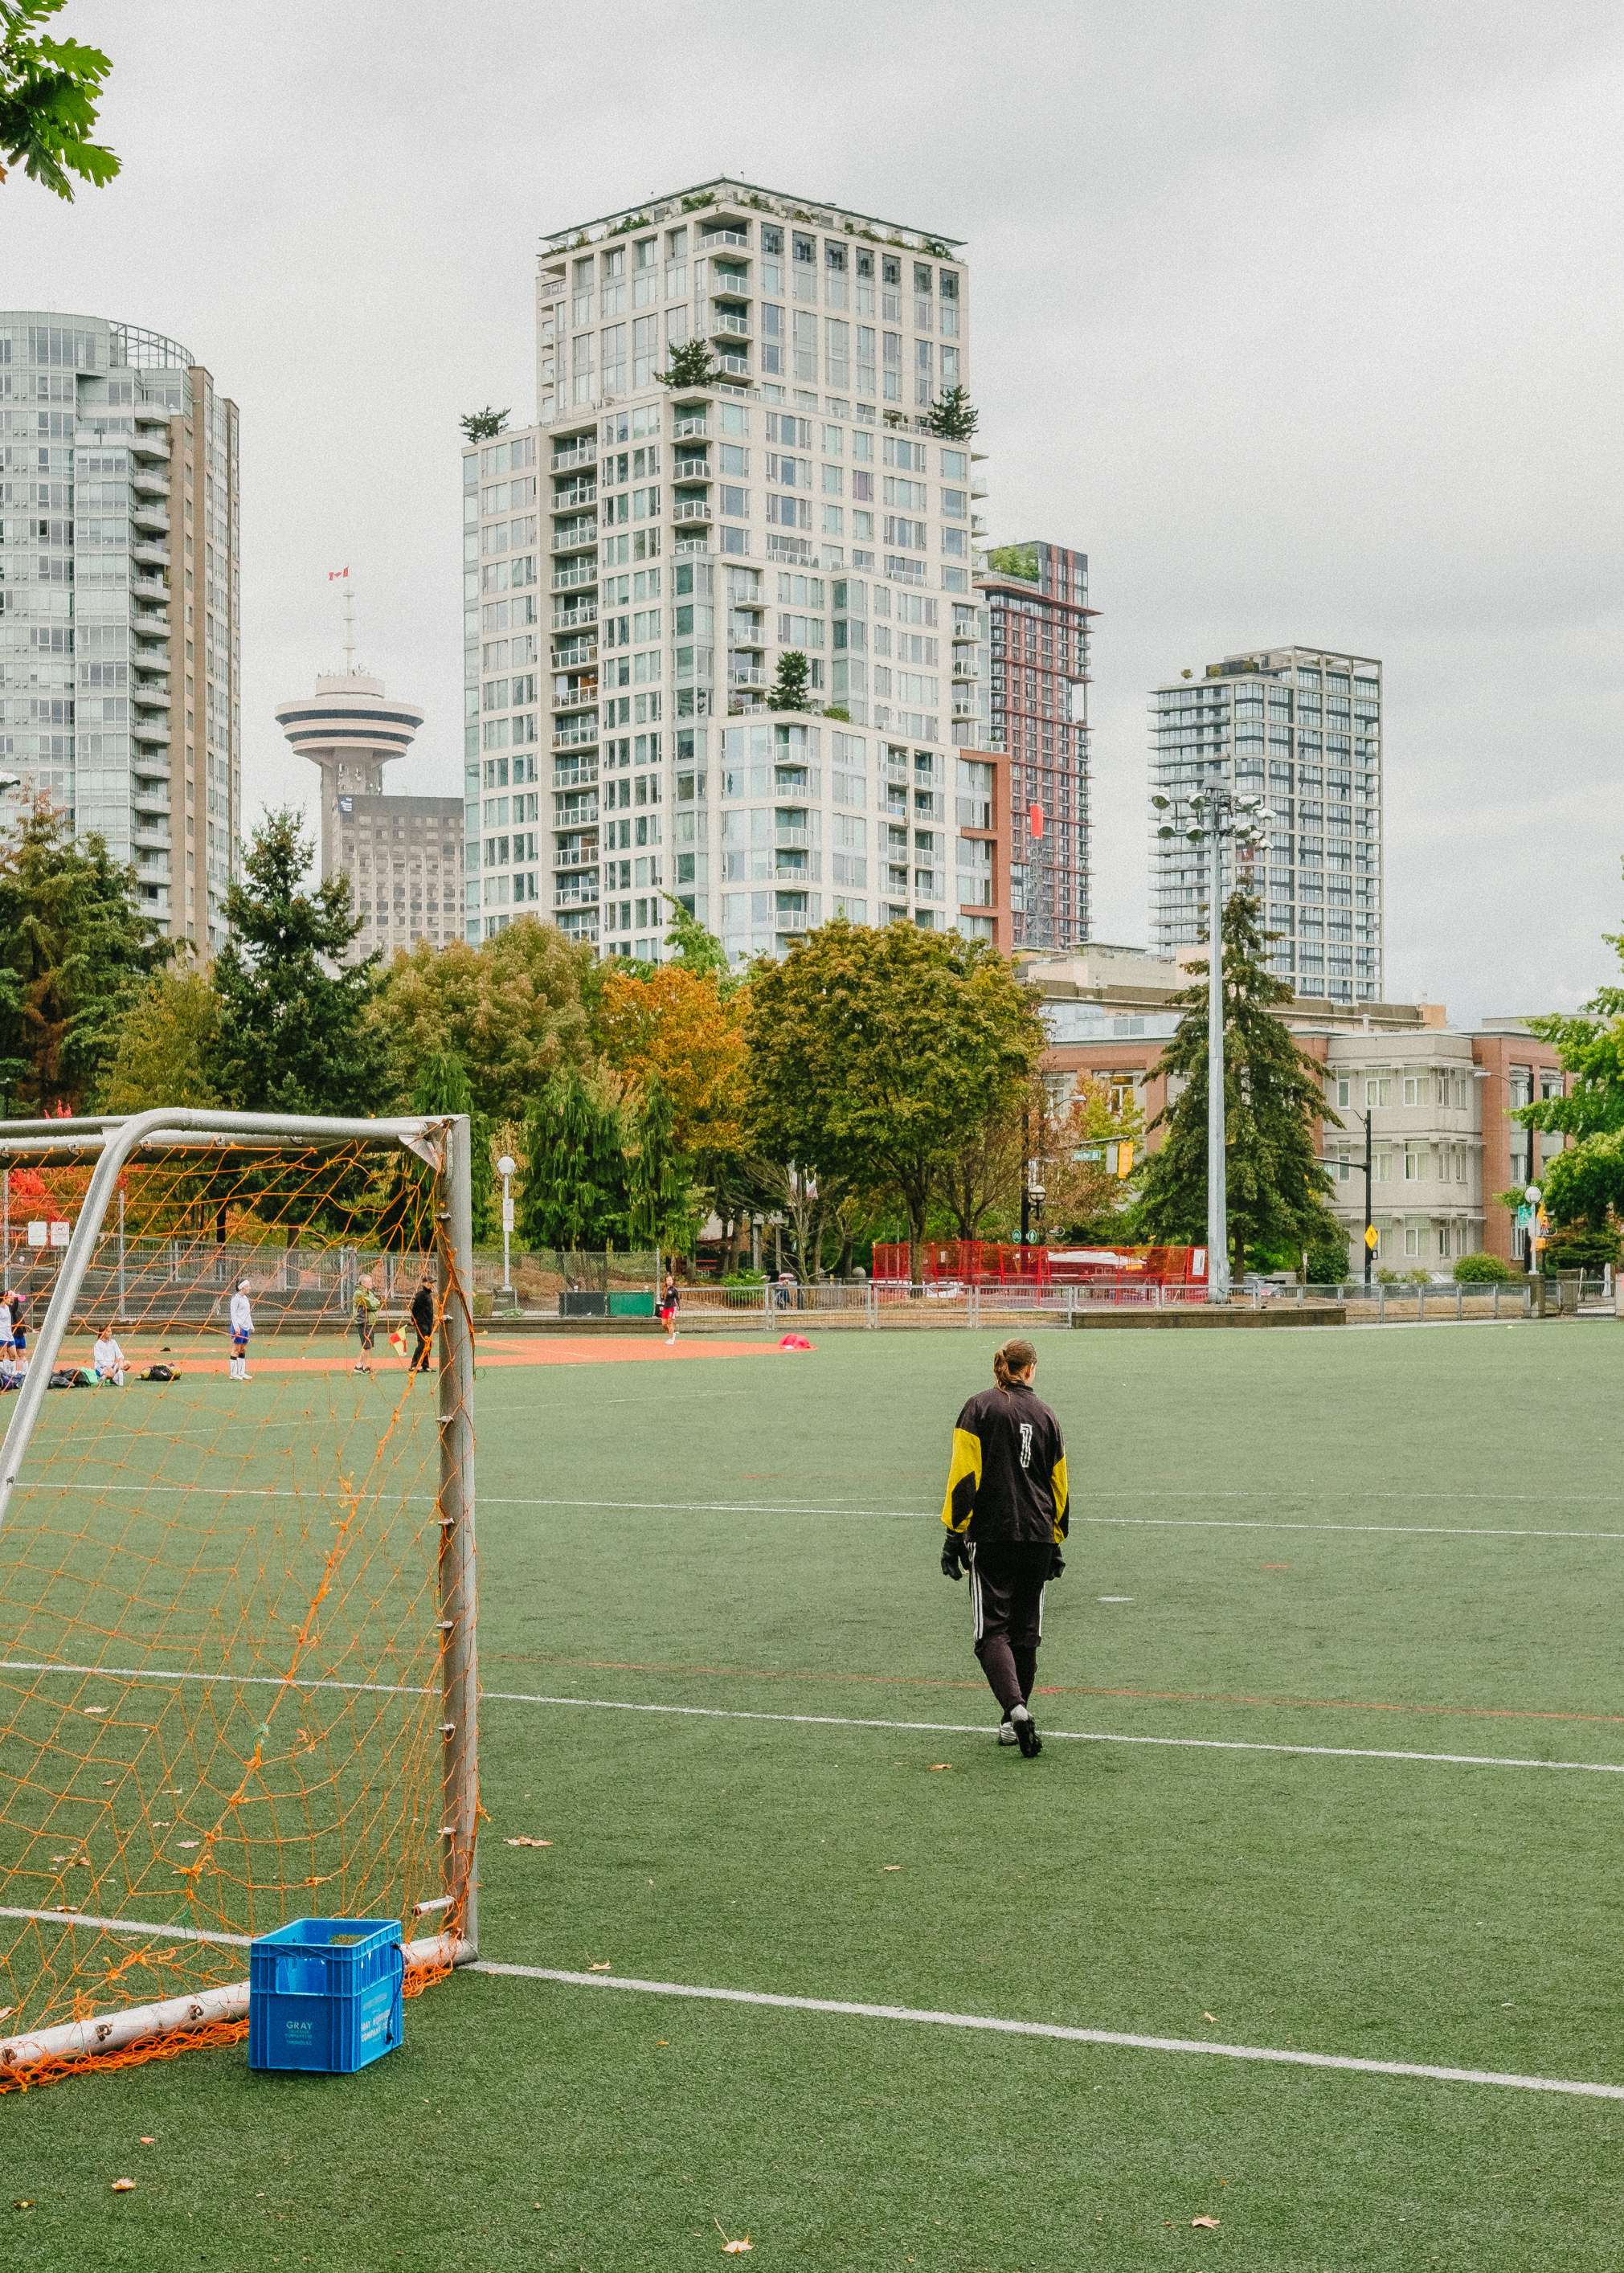 Vancouver_streetphotography_august-14.jpg